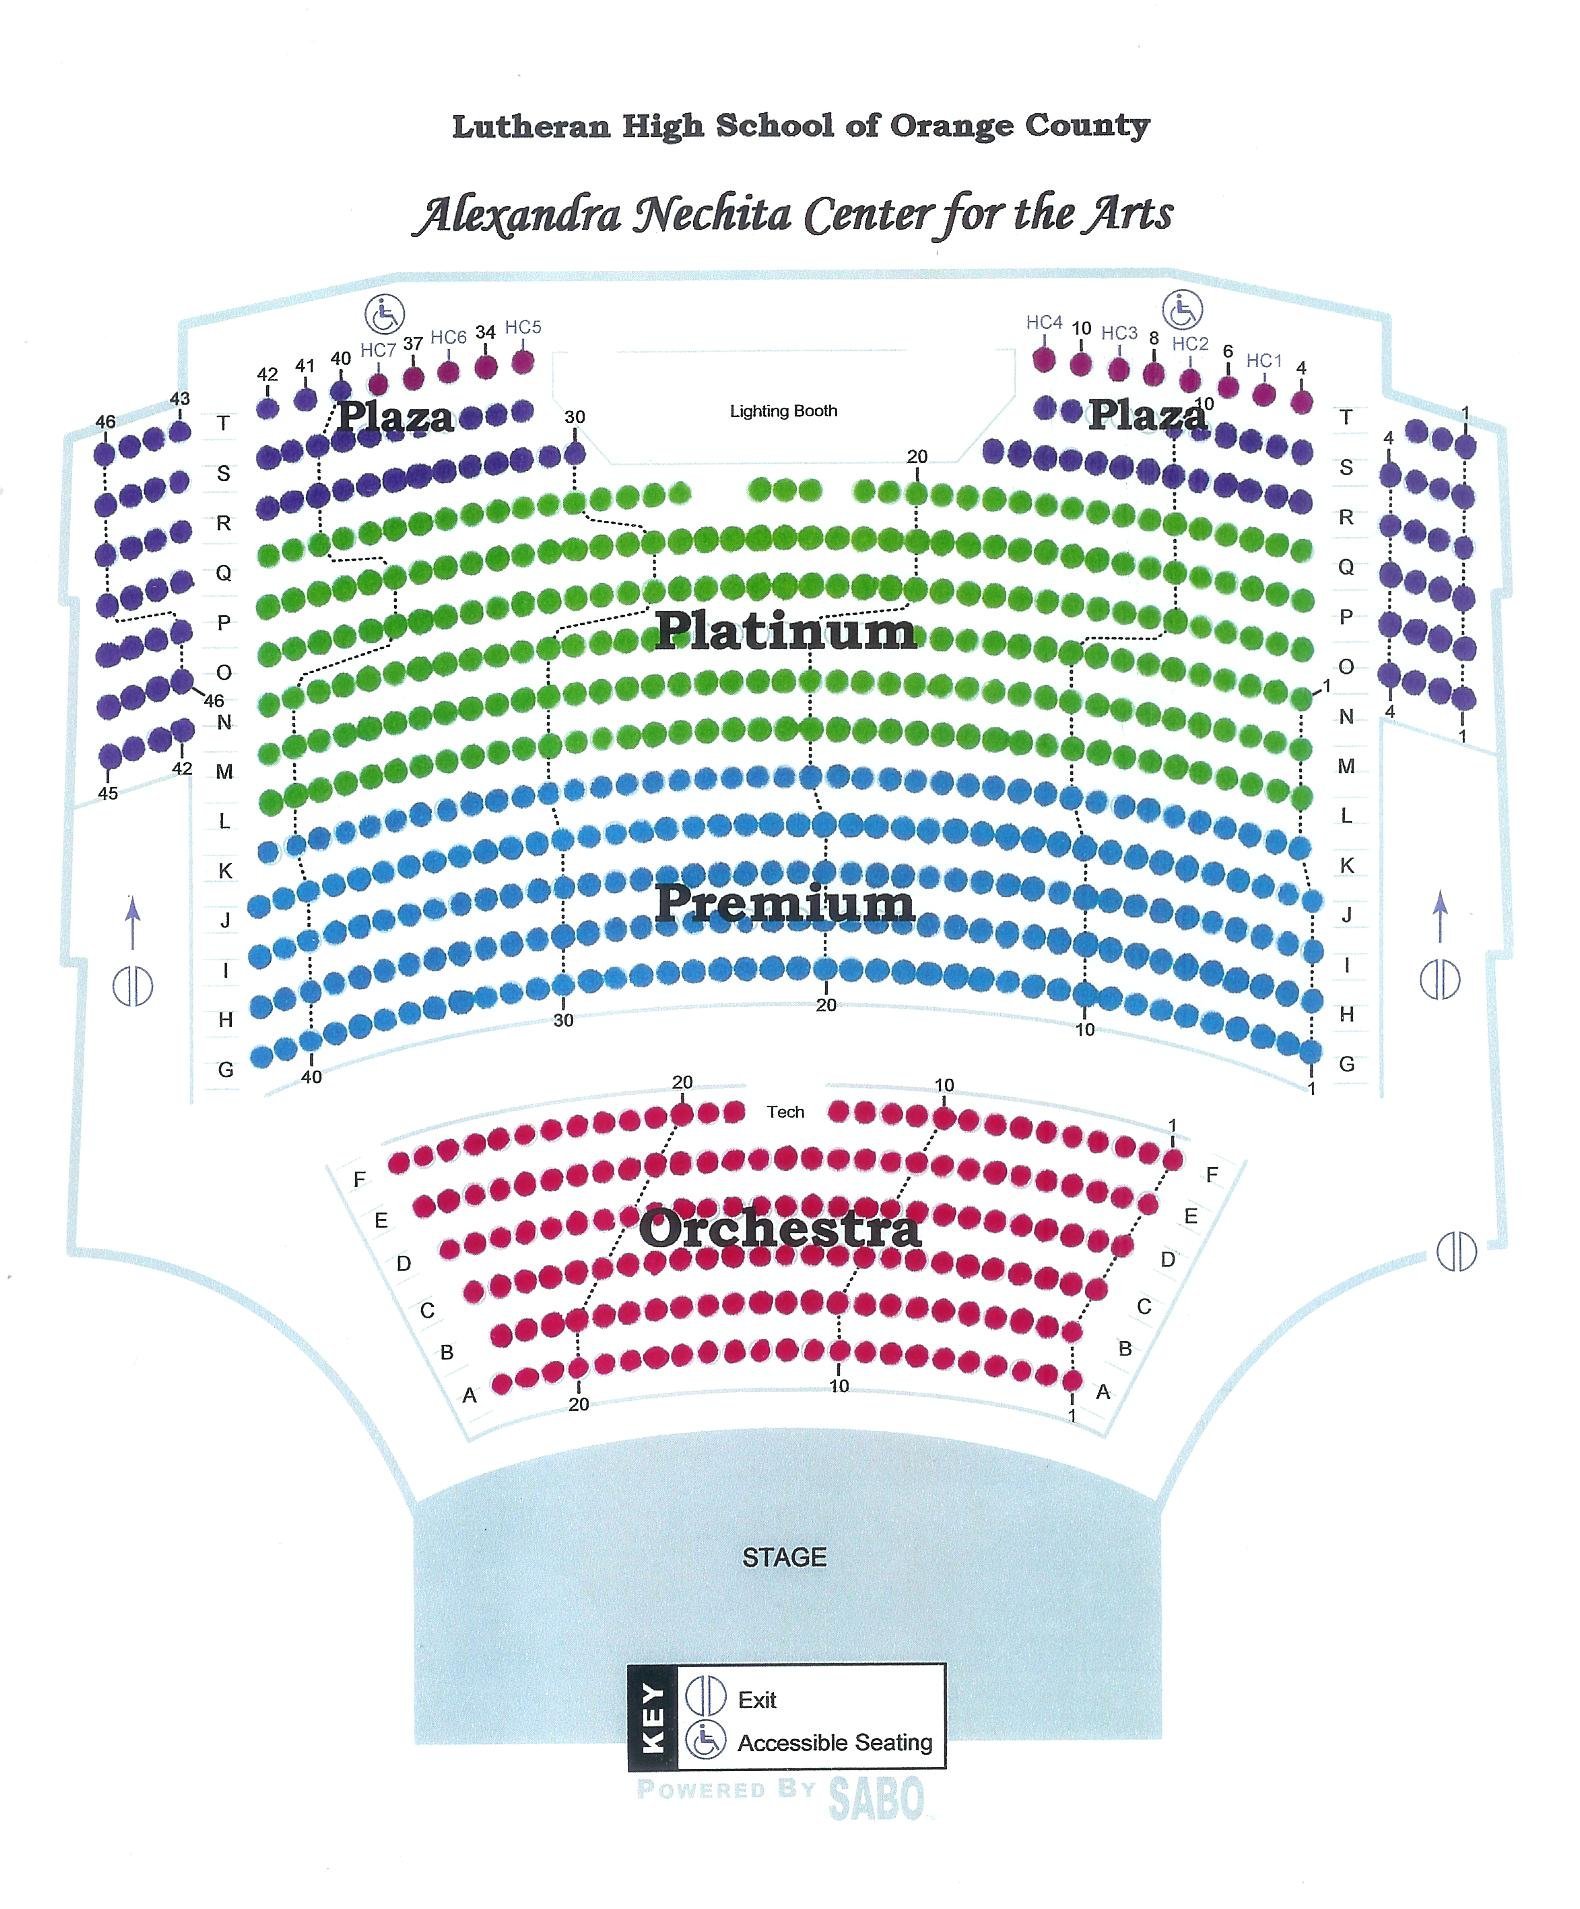 Segerstrom center seating chart ibov jonathandedecker com